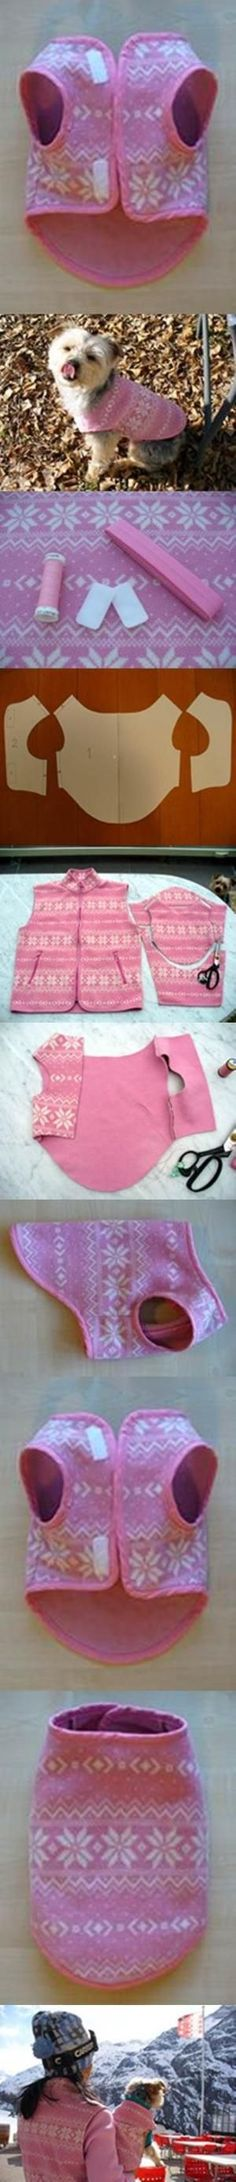 DIY Easy Dog Fleece Jacket 2 by erika